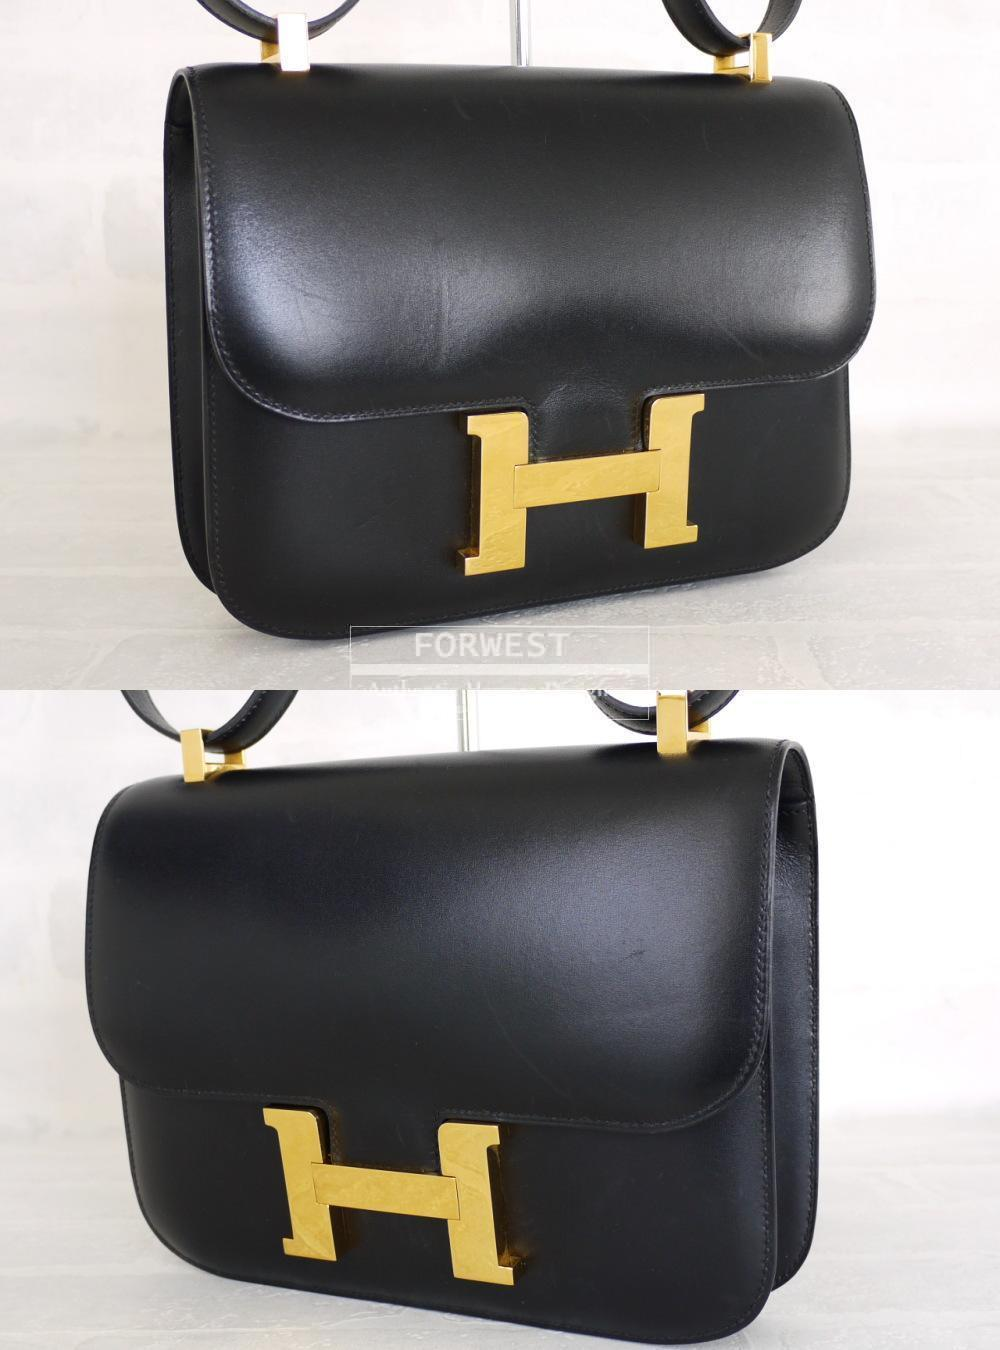 Authentic Hermes Black Box Calf 23cm Constance Bag Rare